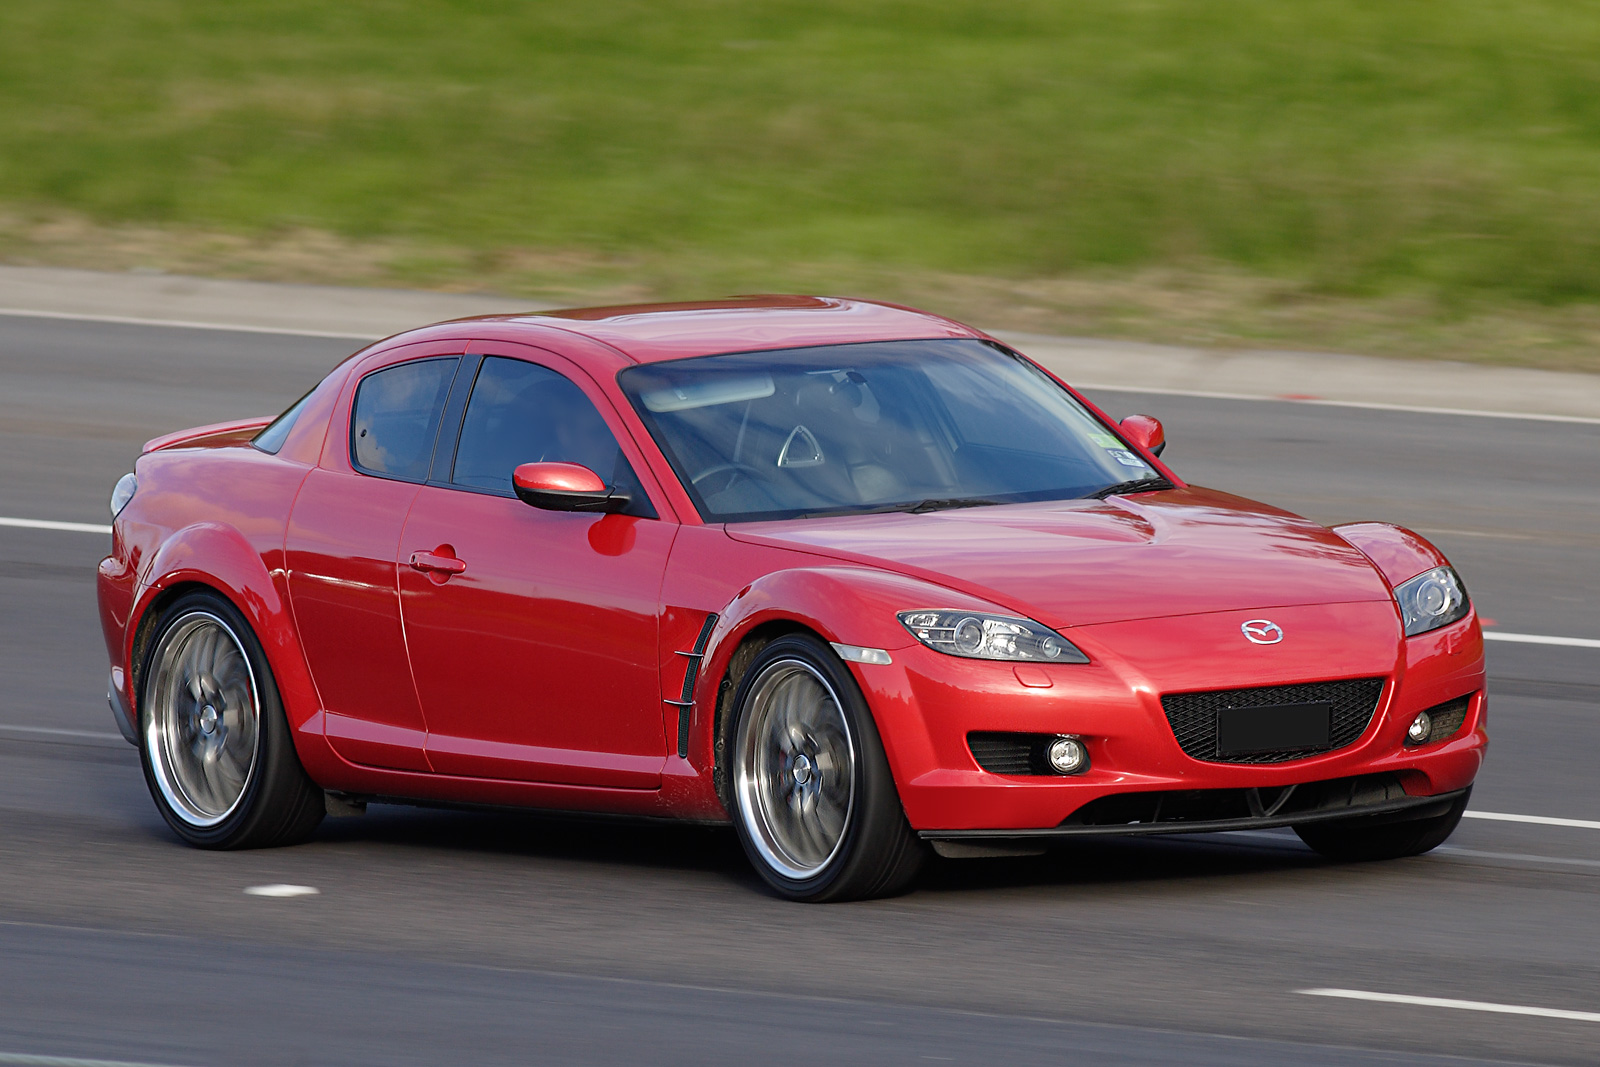 https://upload.wikimedia.org/wikipedia/commons/b/b8/Mazda_RX-8_on_freeway.jpg